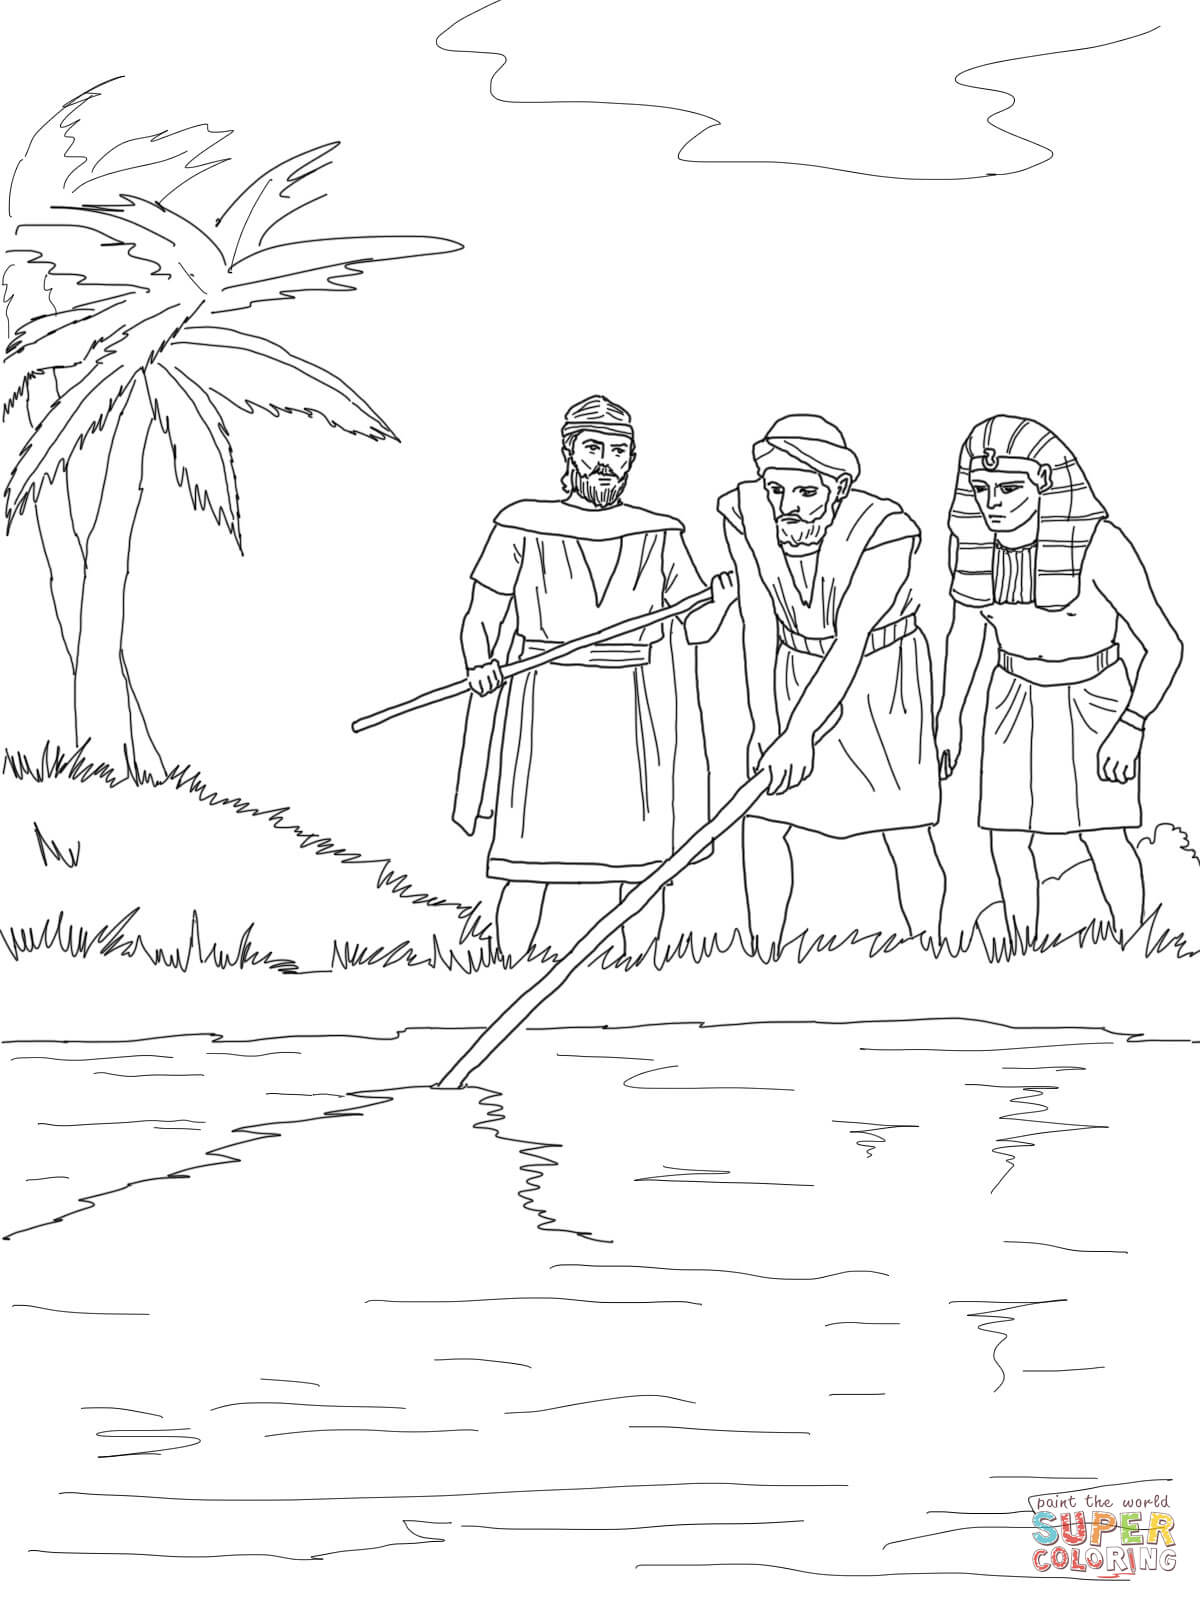 Abraham Kleurplaat 10 Plagues Of Egypt Coloring Pages Coloring Home